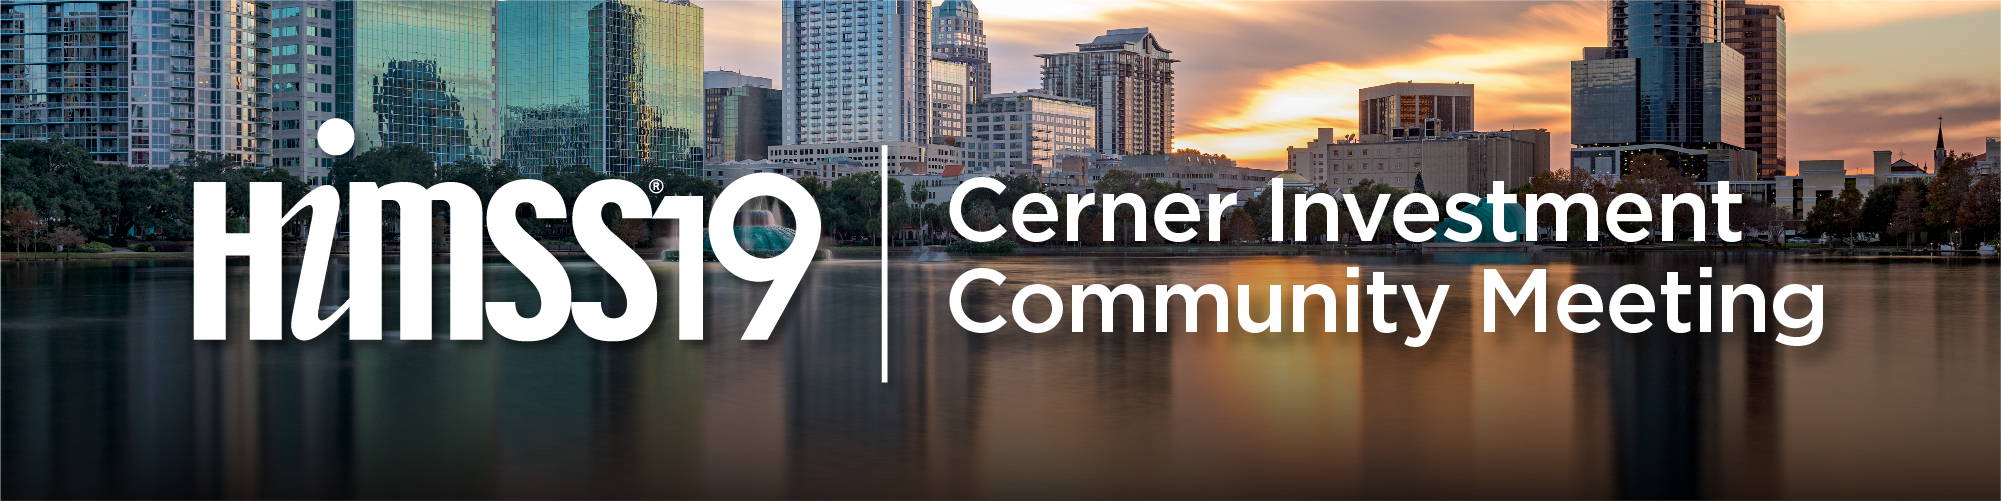 Cerner Investment Community Meeting at HIMSS 2019